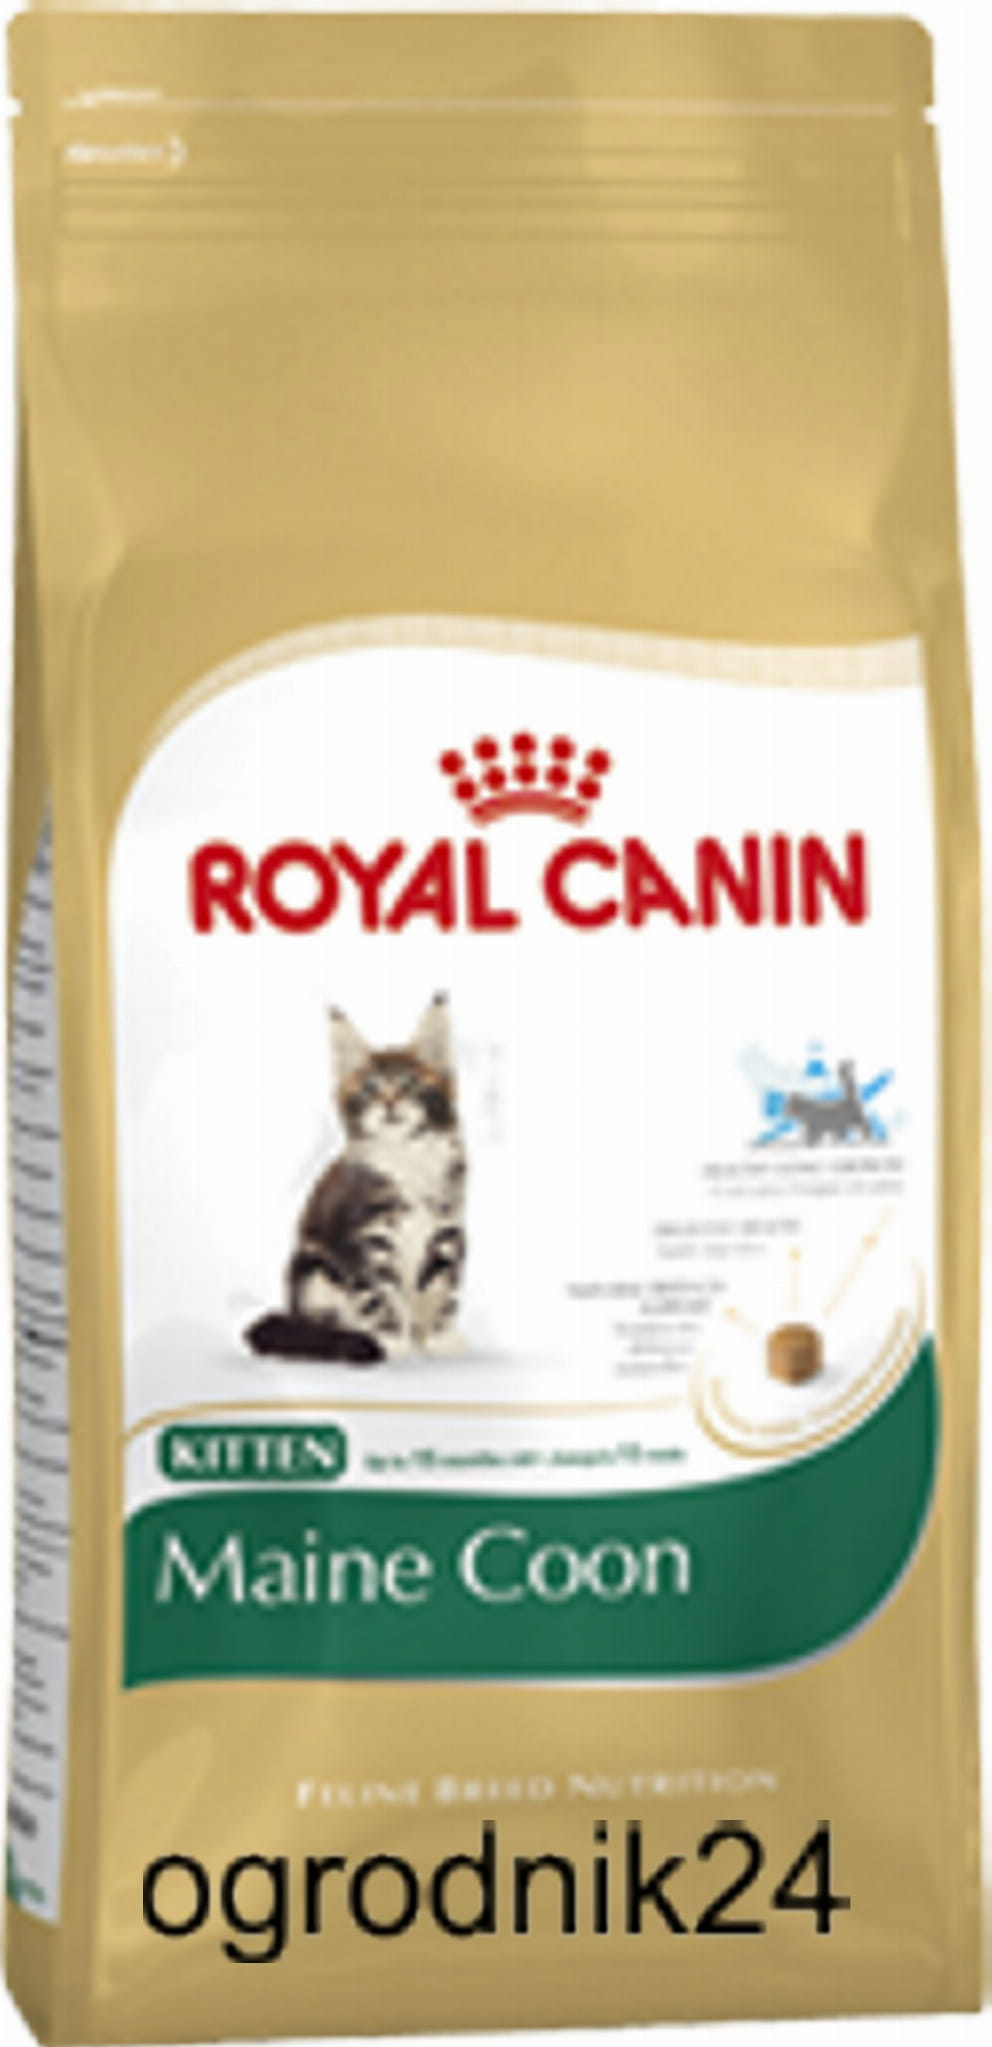 royal canin maine coon kitten 400g 400g w wa. Black Bedroom Furniture Sets. Home Design Ideas